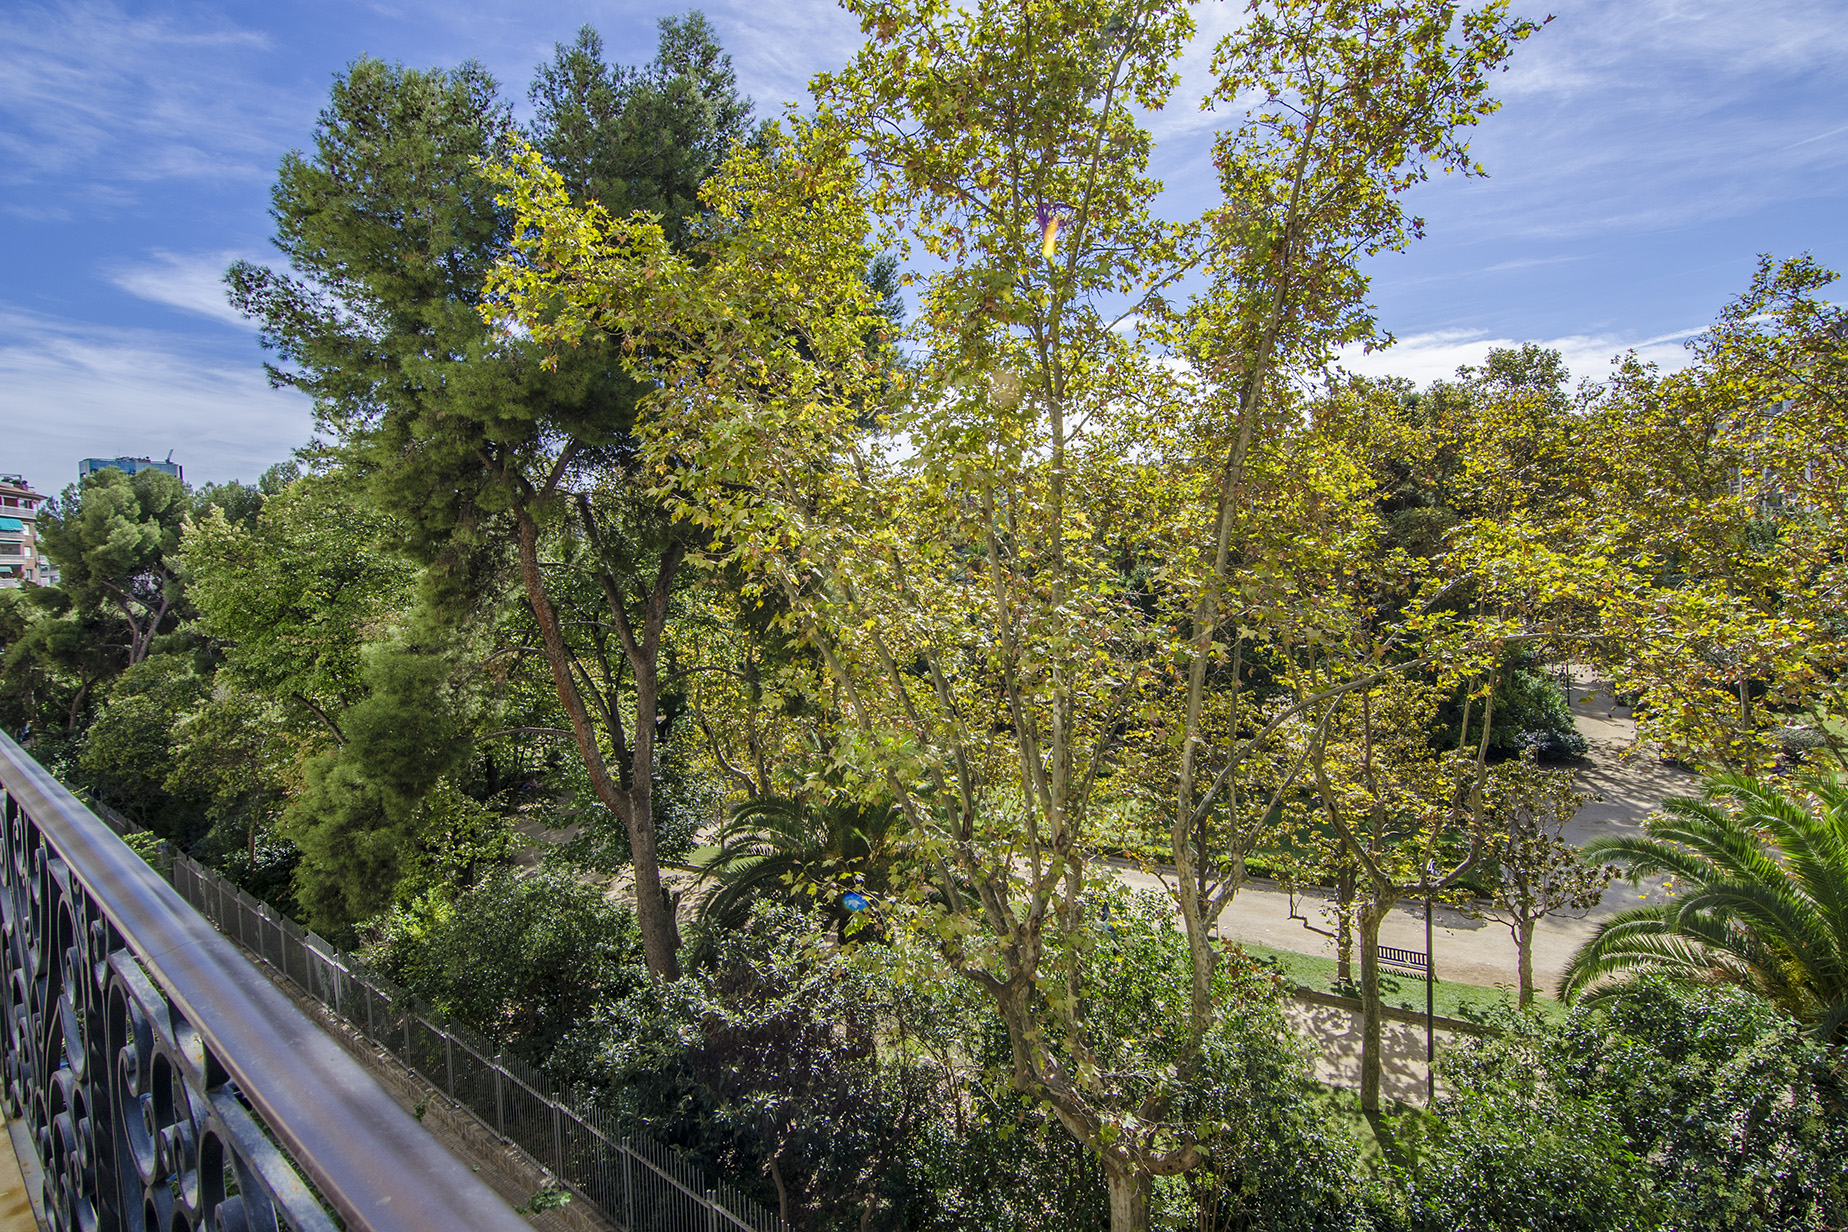 Apartment for Sale at Apartment to reform in a stately building in Turó Park Zona Alta, Barcelona City, Barcelona 08034 Spain